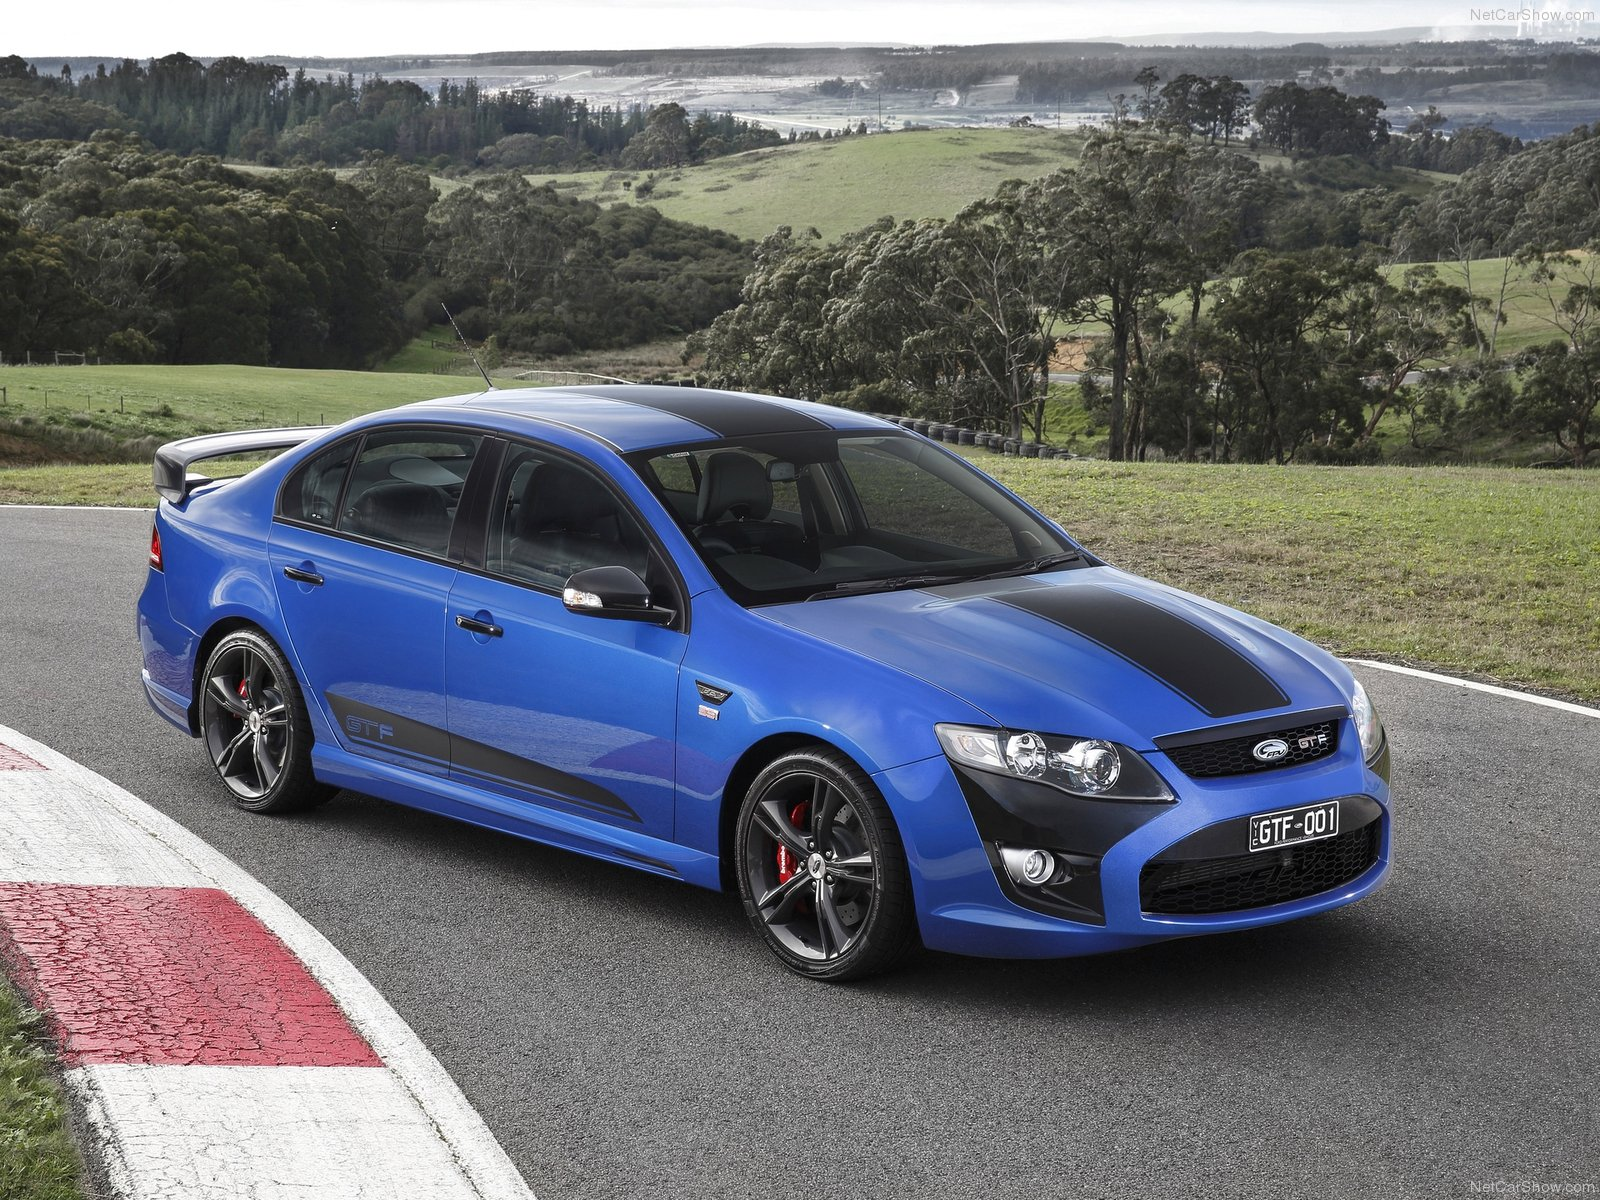 fpv gt f 351 photos photogallery with 64 pics carsbasecom